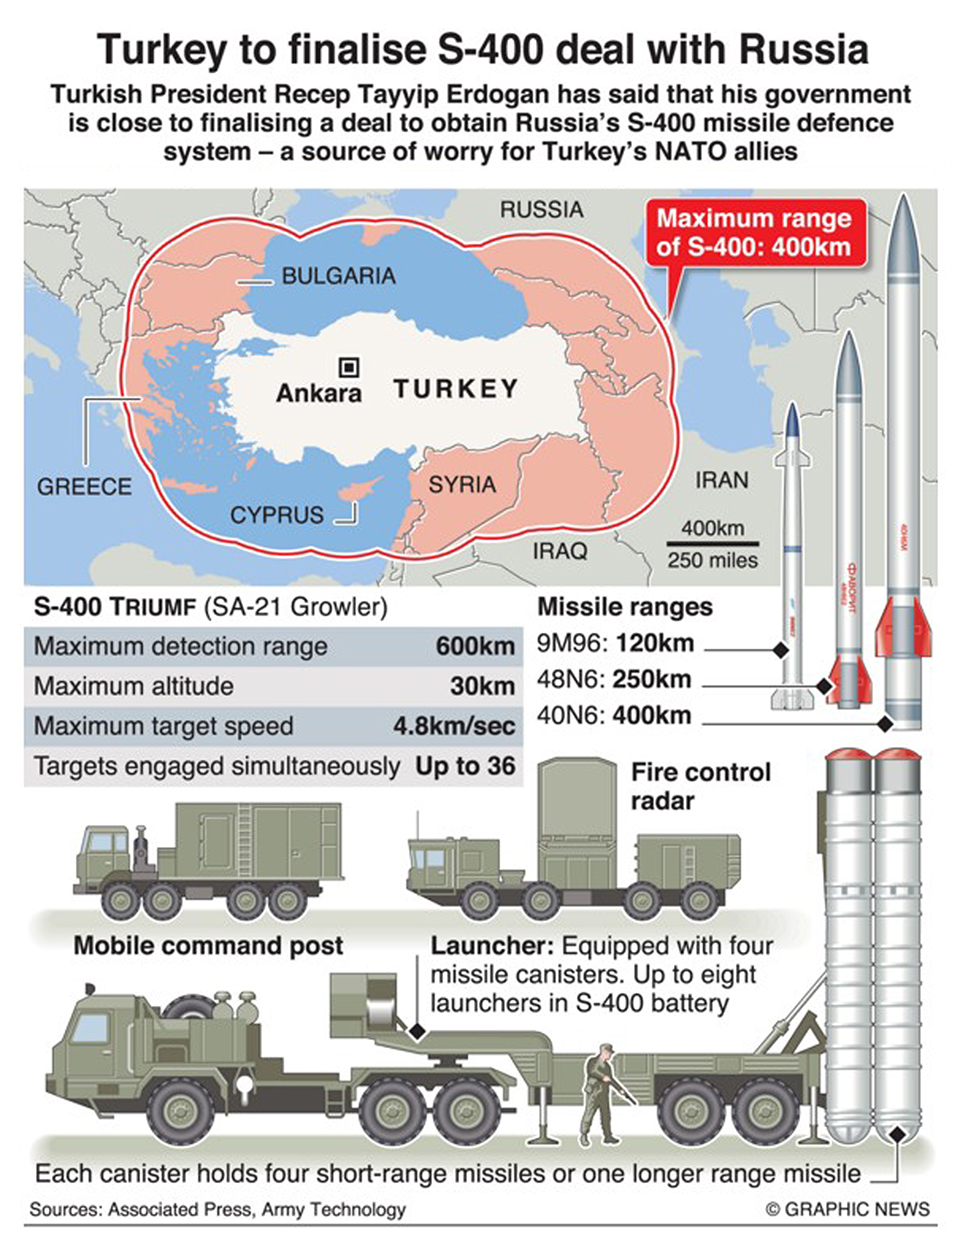 Infographics: Turkey to finalize S-400 defense deal with Russia